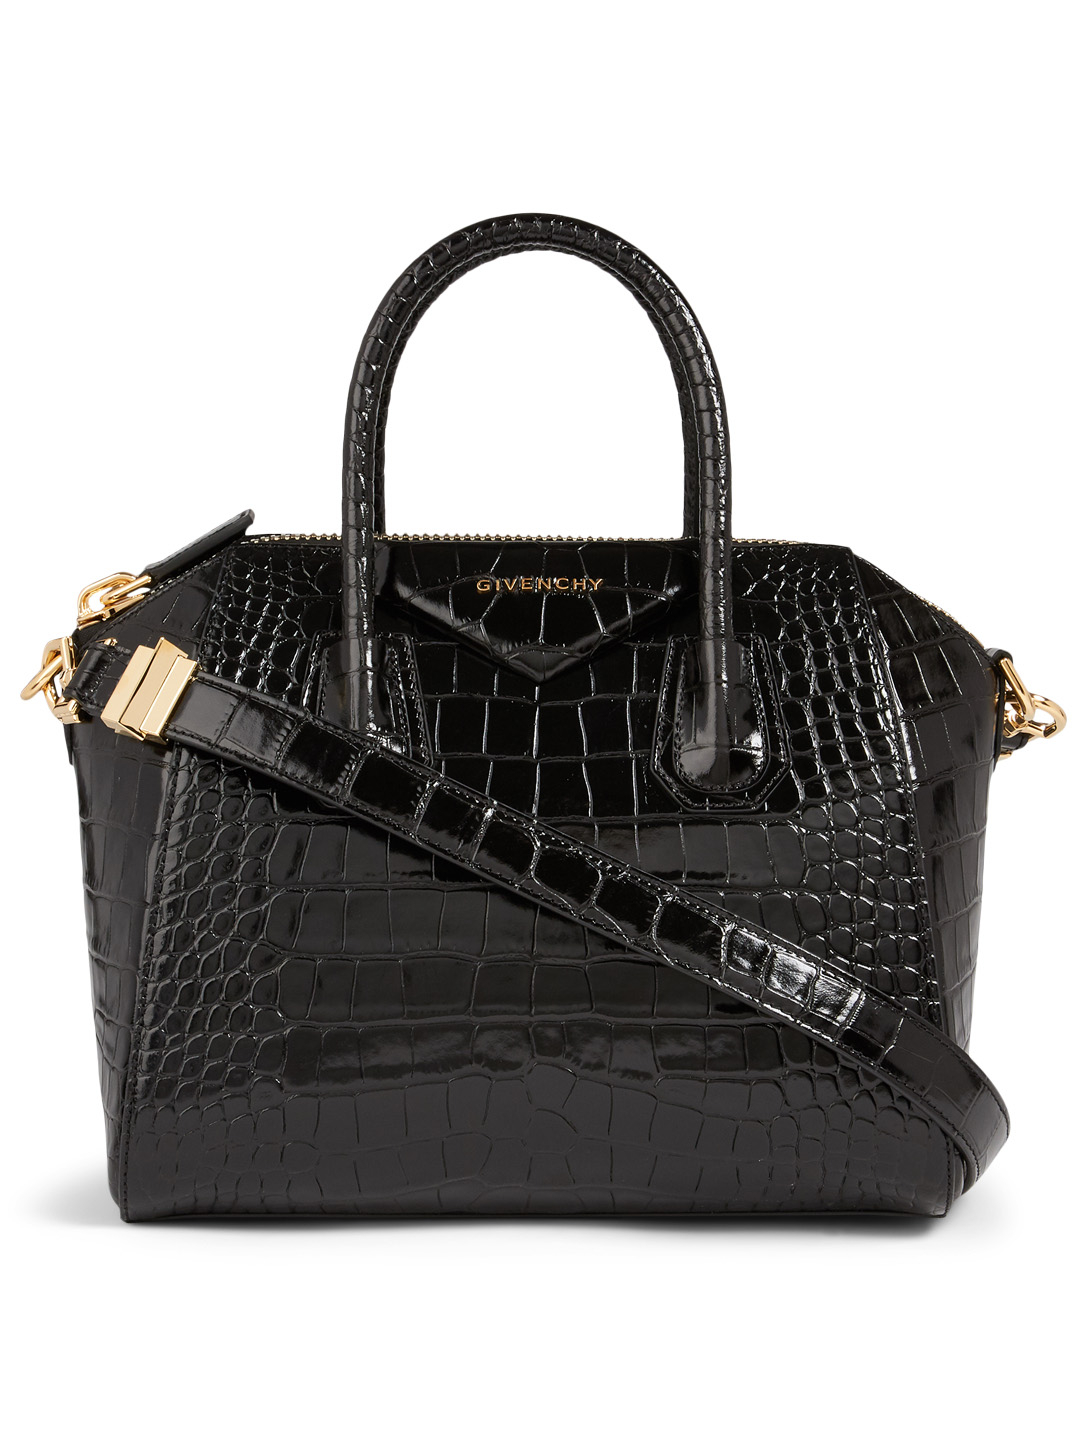 GIVENCHY Small Antigona Croc-Embossed Leather Bag Women's Black